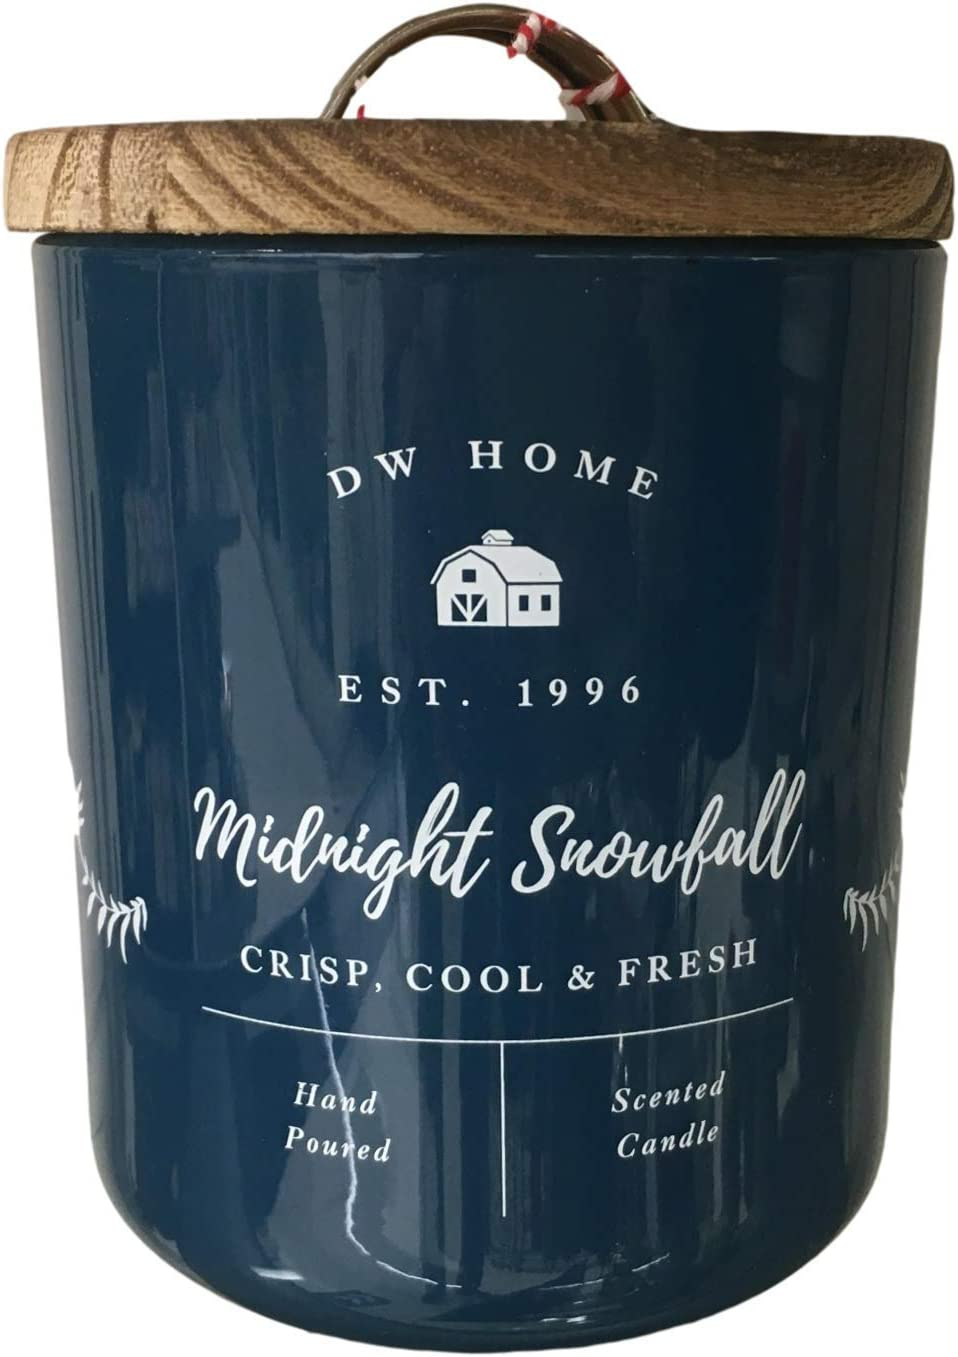 DW Home Farmhouse Holiday Classics Collection Medium Single Wick Wood Lid Candles (Midnight Snowfall)